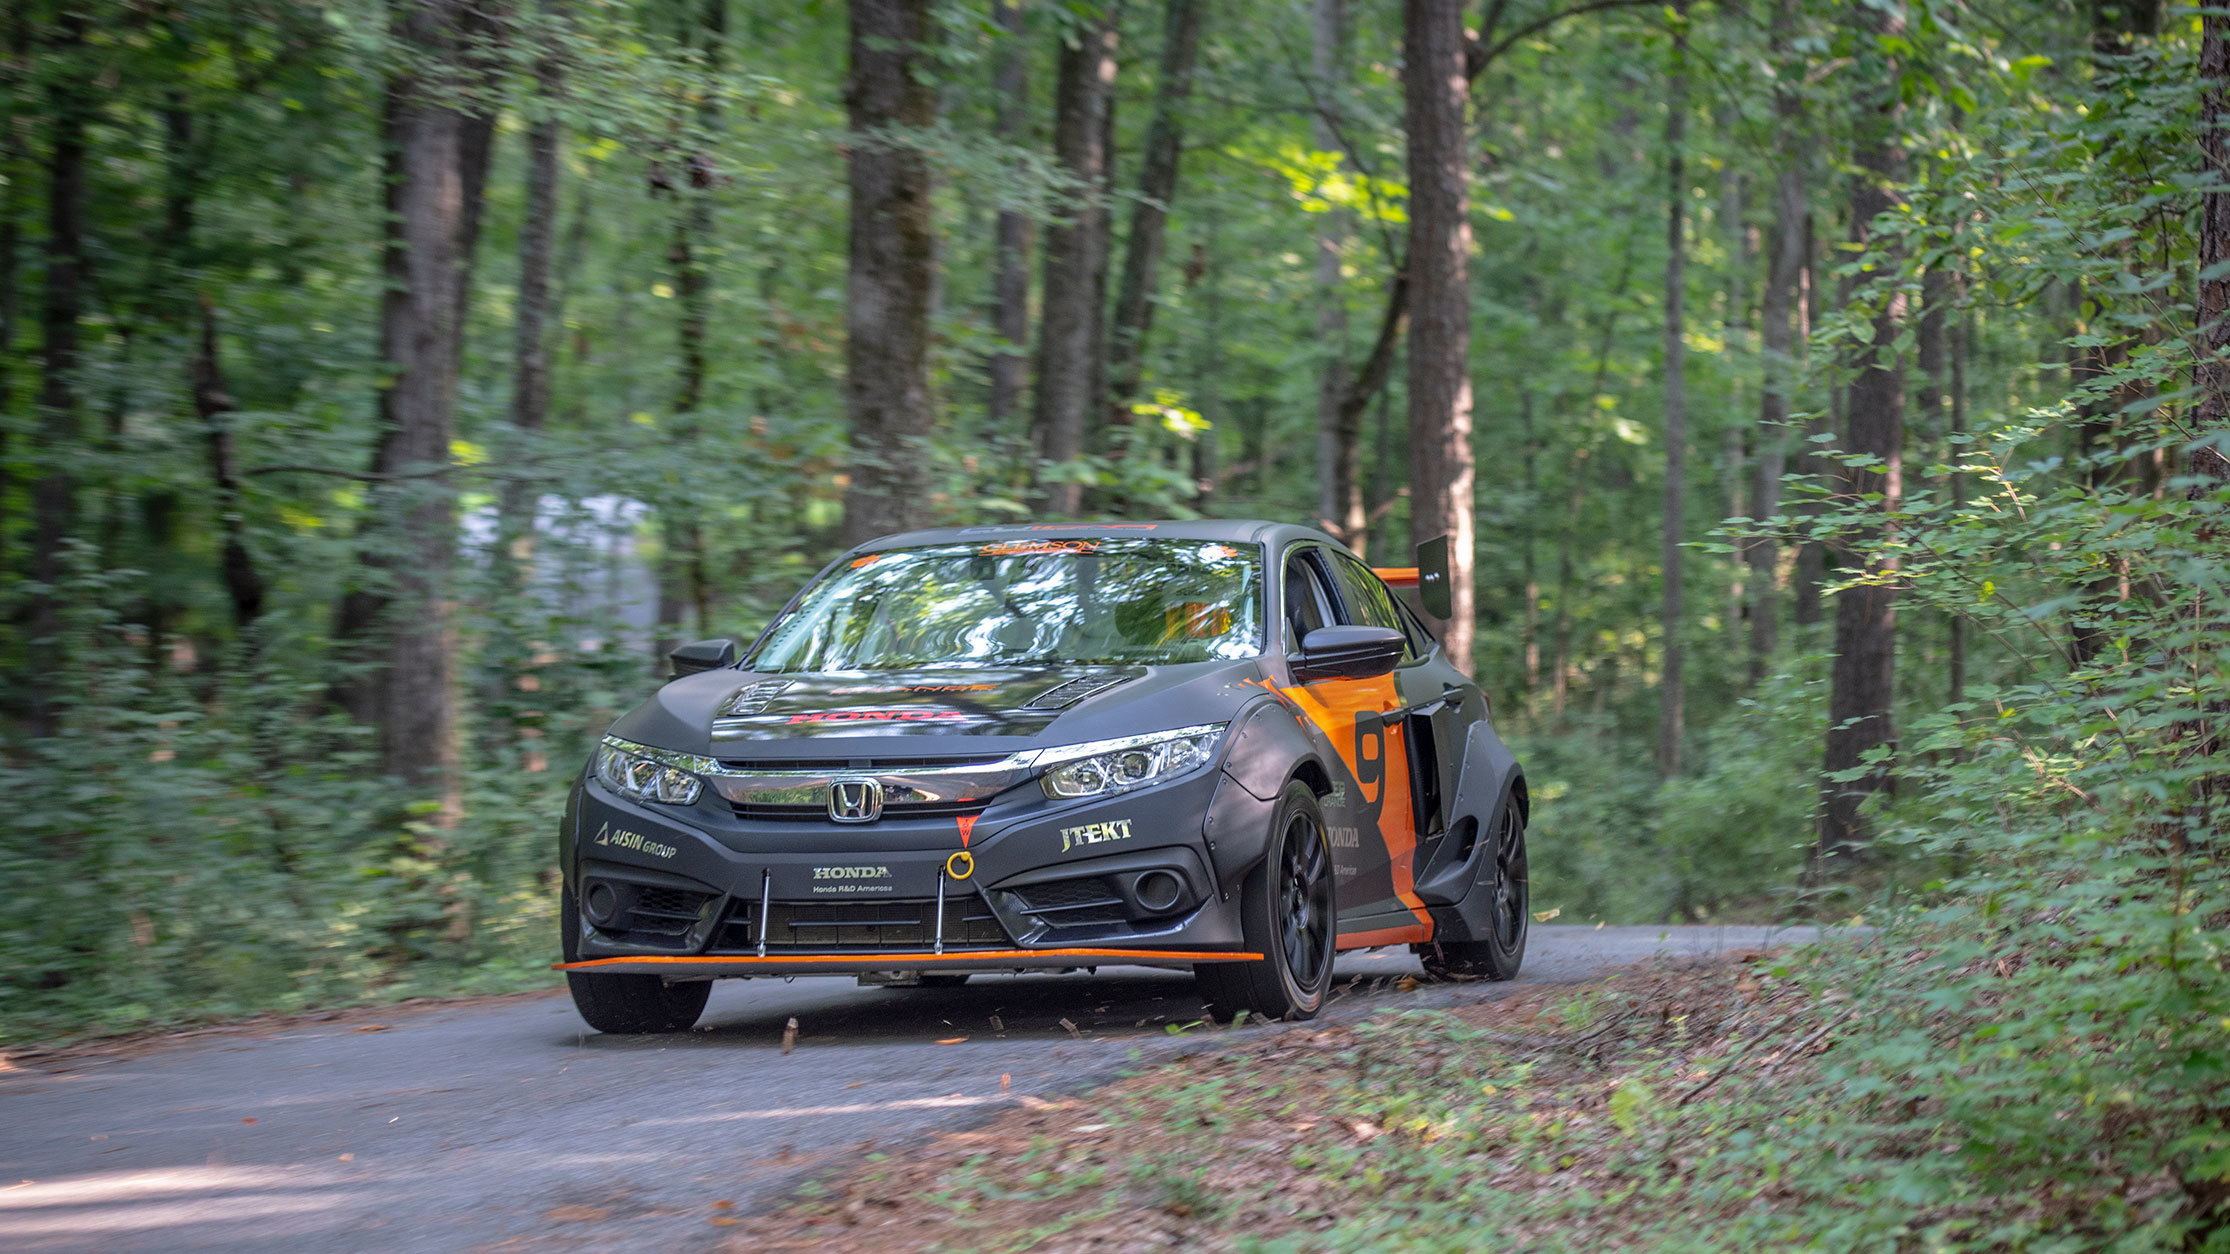 Honda Civic with hybrid powertrain by Clemson University (6)